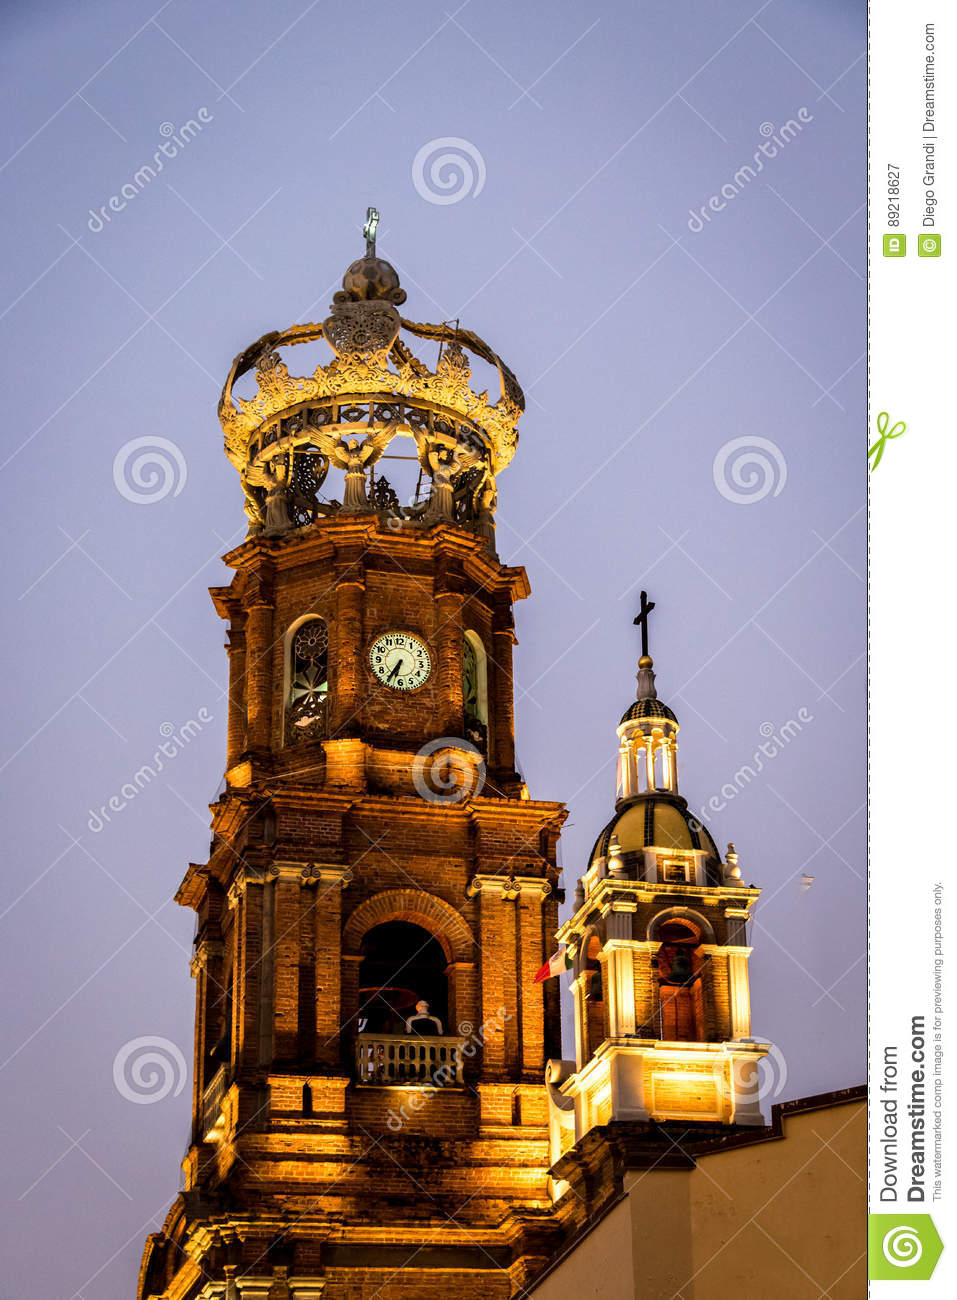 Tower of Our Lady of Guadalupe church at night - Puerto Vallarta, Jalisco, Mexico